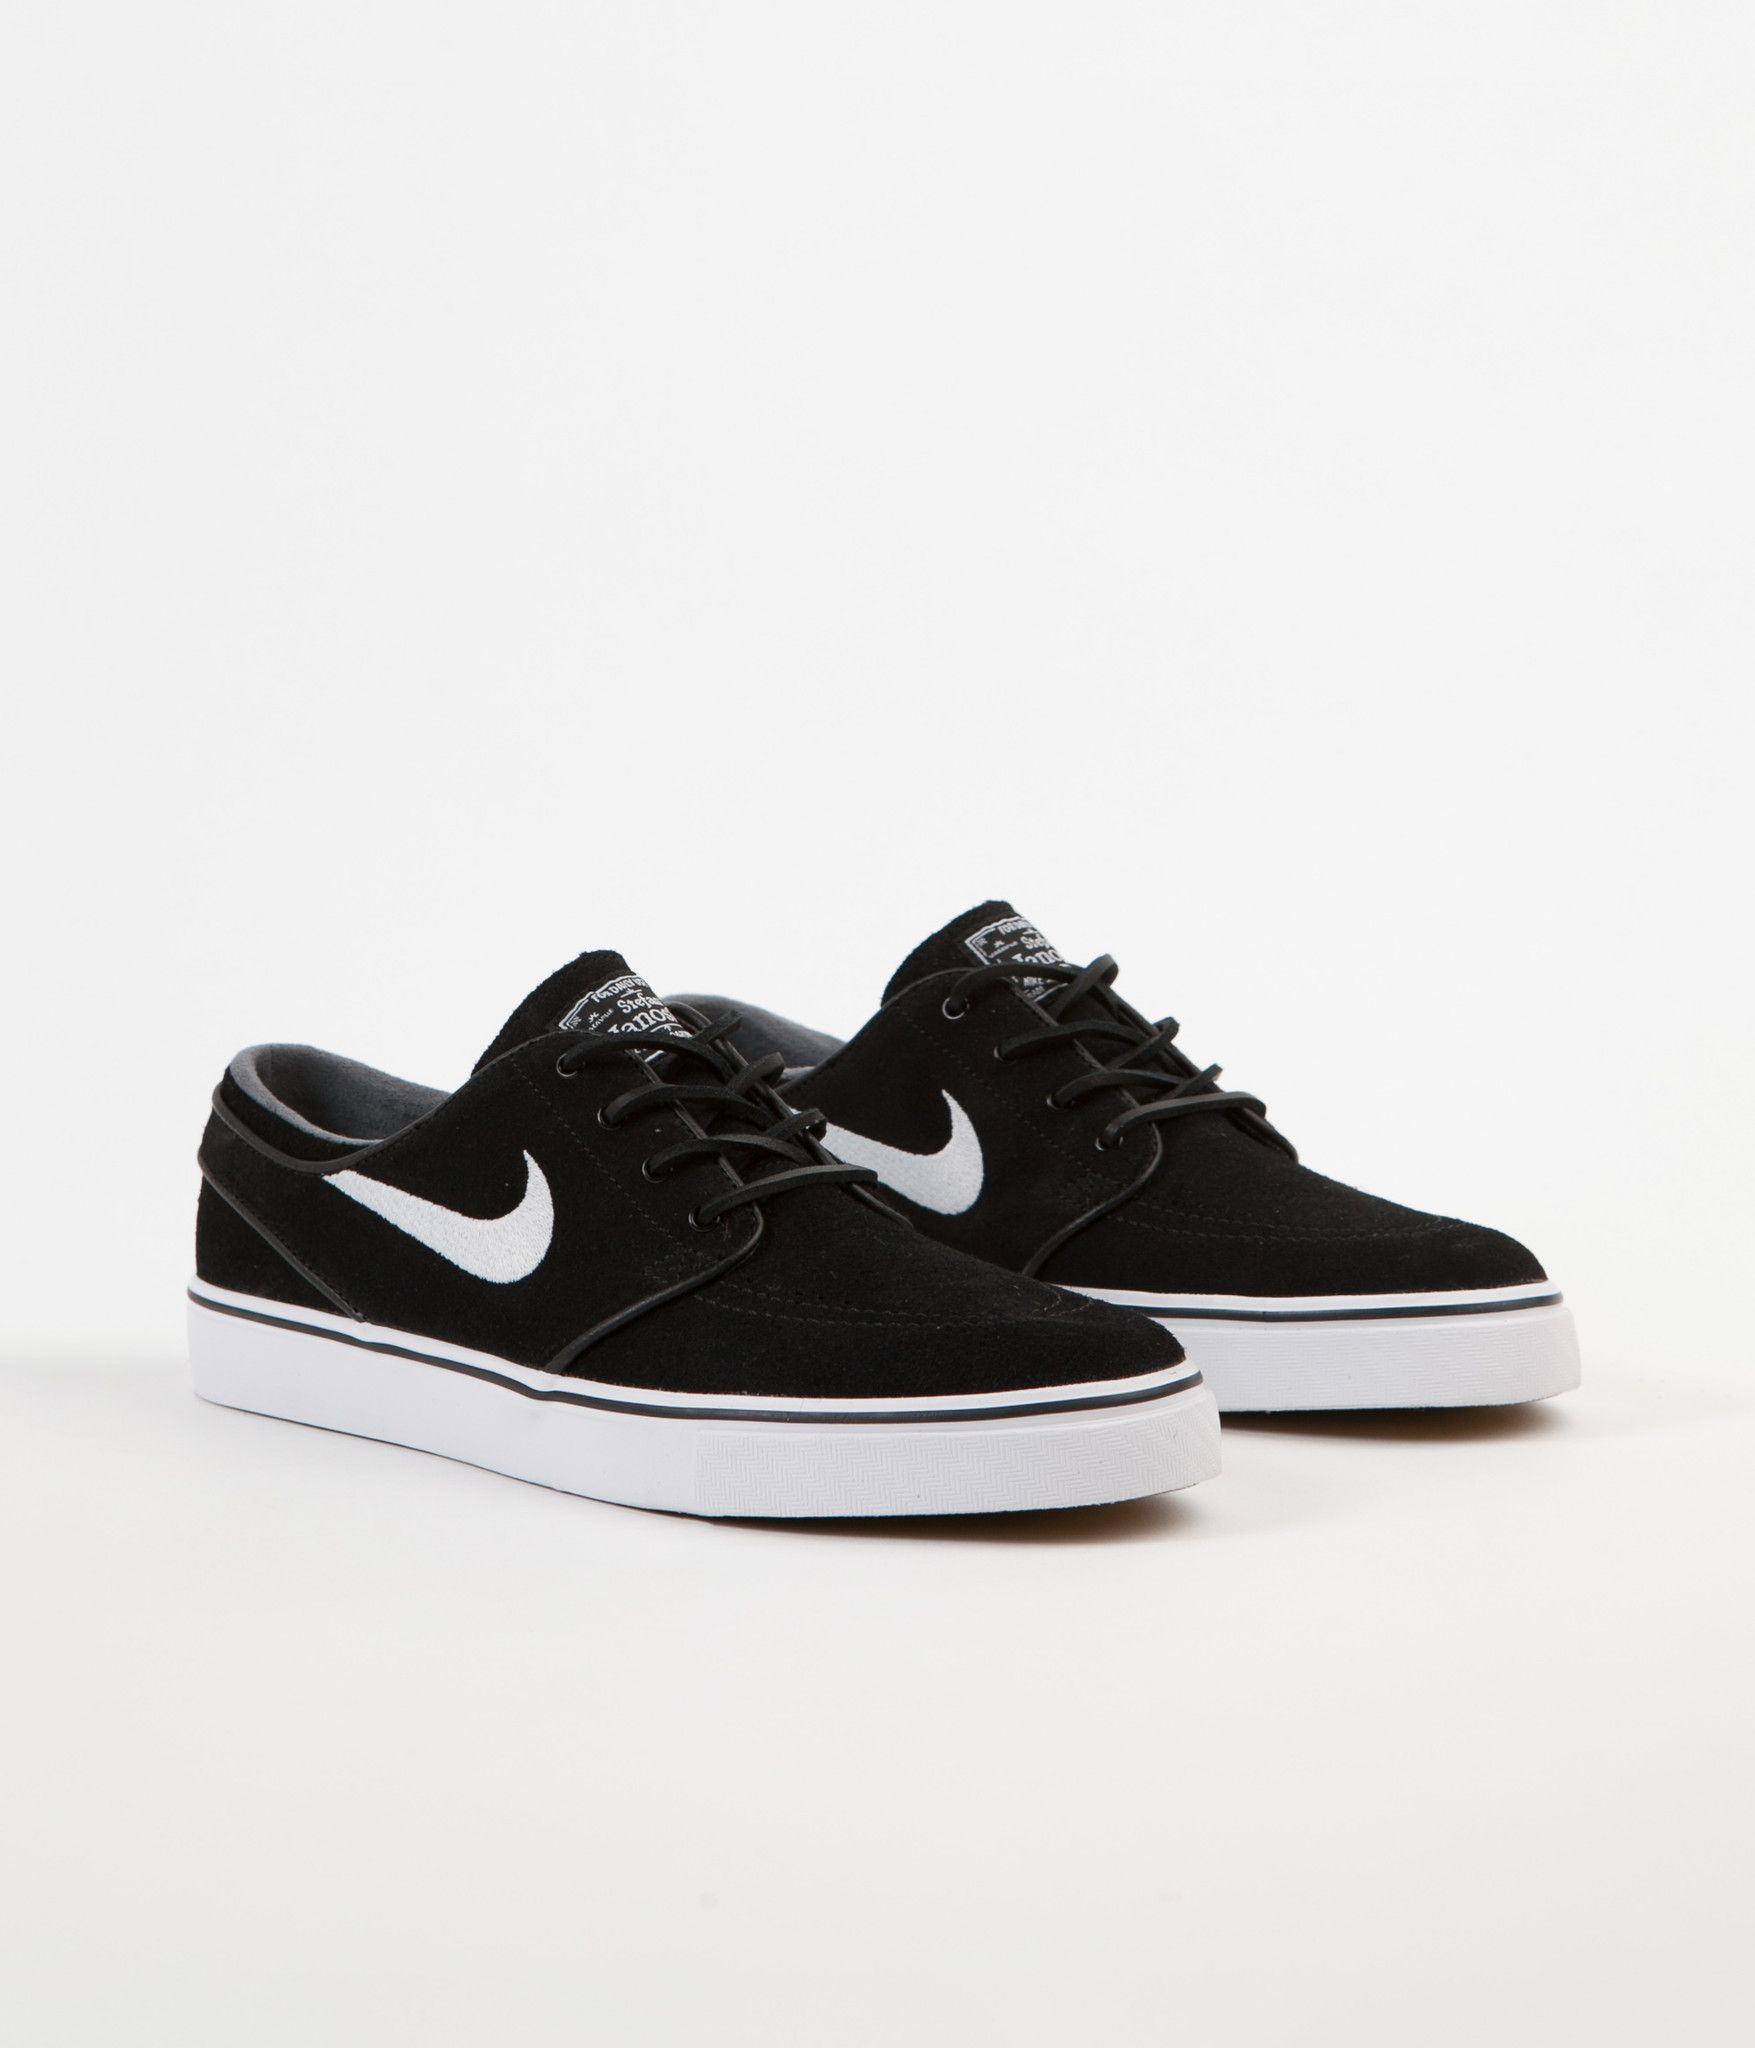 4bc06574d2d9f Nike SB Stefan Janoski OG Shoes - Black   White - Gum Light Brown ...